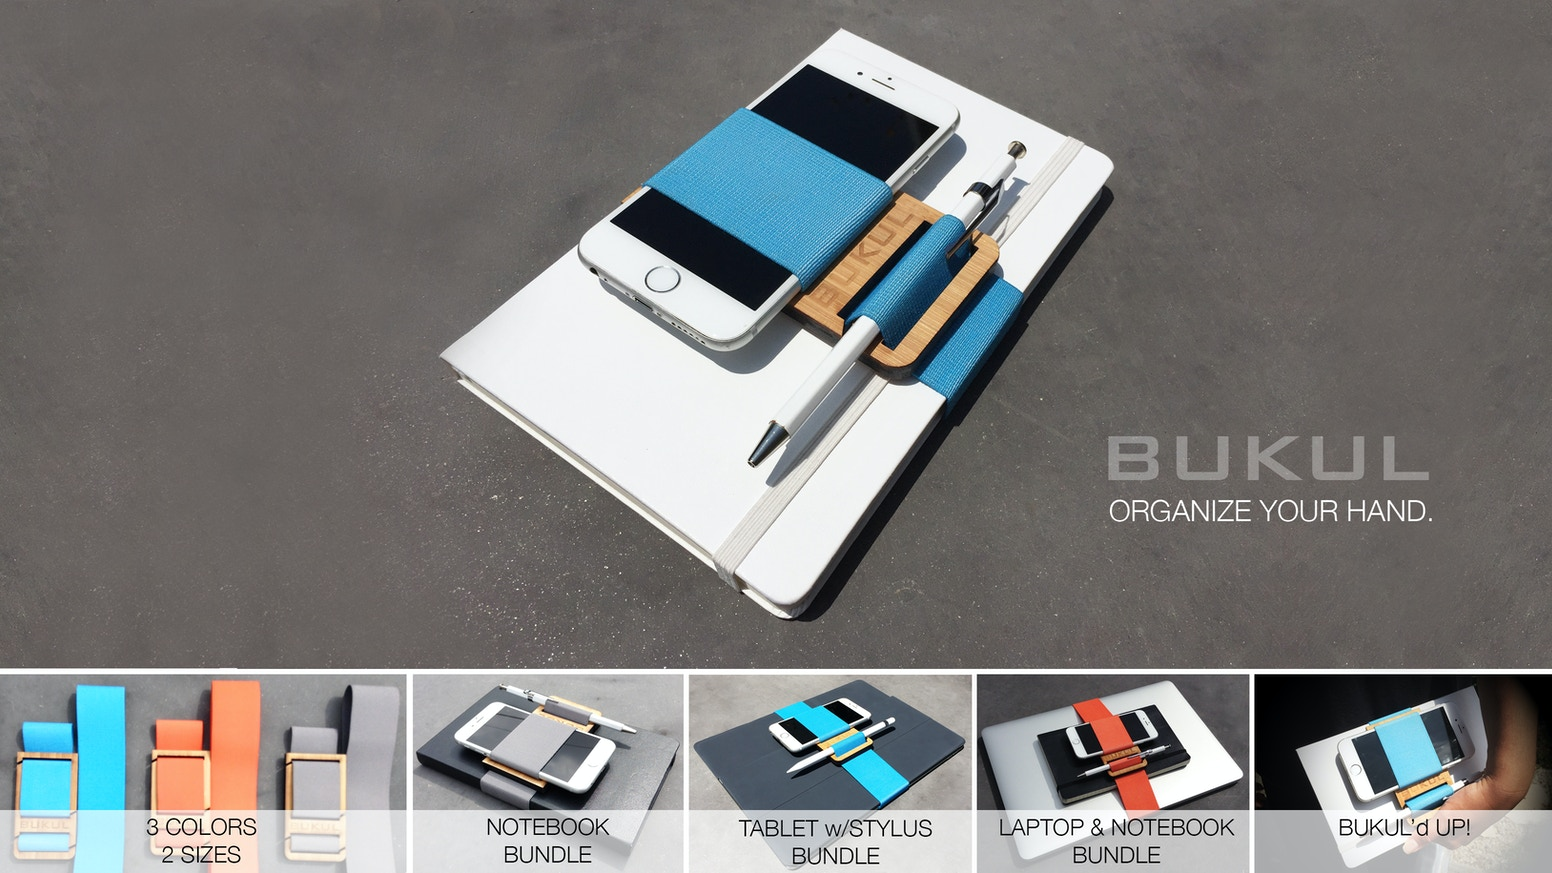 BUKUL on the go. Gadgets, notebooks and objects organized, so you can keep you moving.This is a revolutionary new product organizes your hand by combining and holding items for the on-the-go professional.